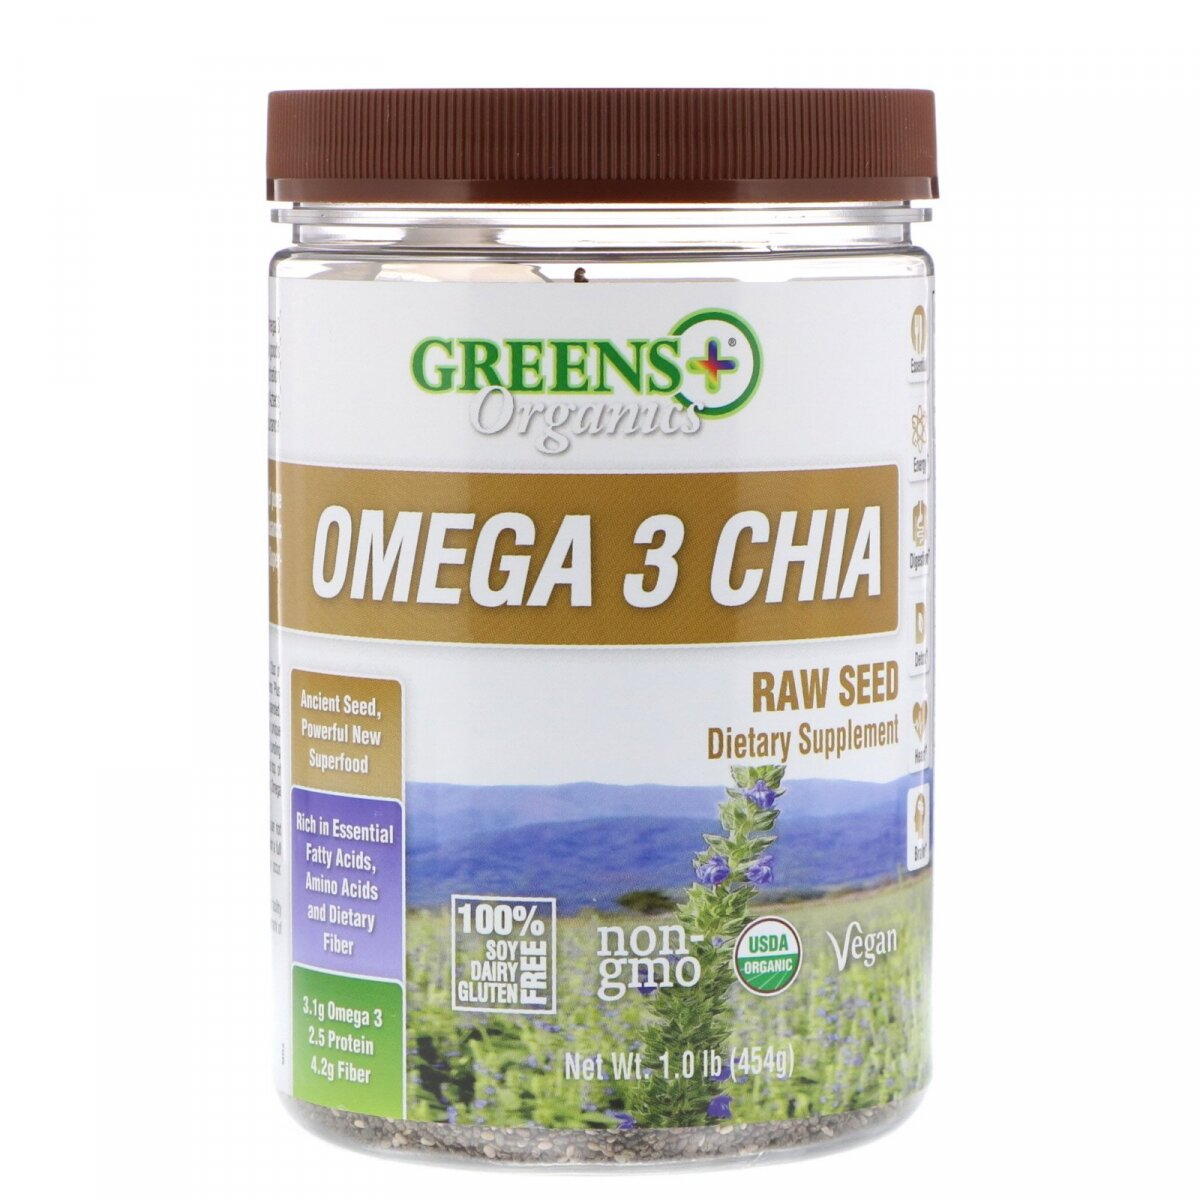 Семена чиа с Omega-3, Chia Omega 3, Greens Plus, 454 г